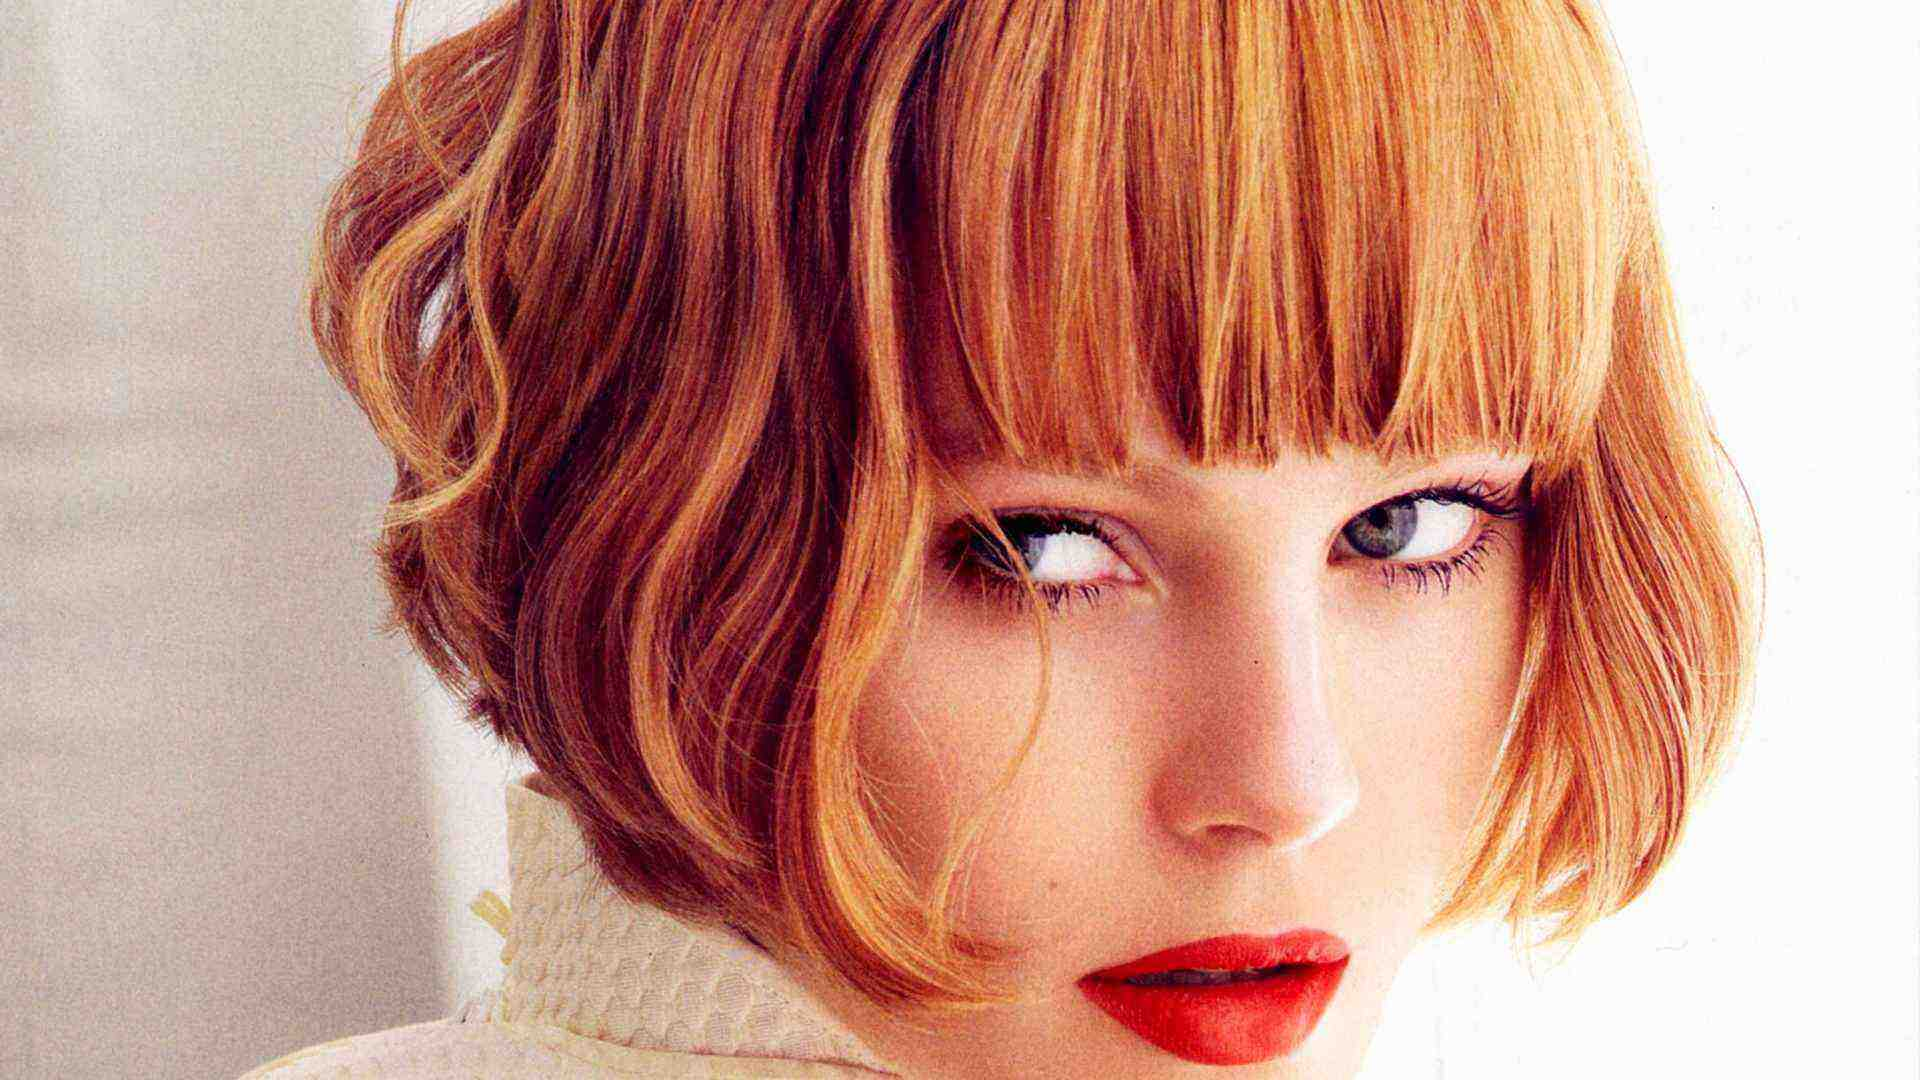 What are modern trends for short bob haircuts for thick hair